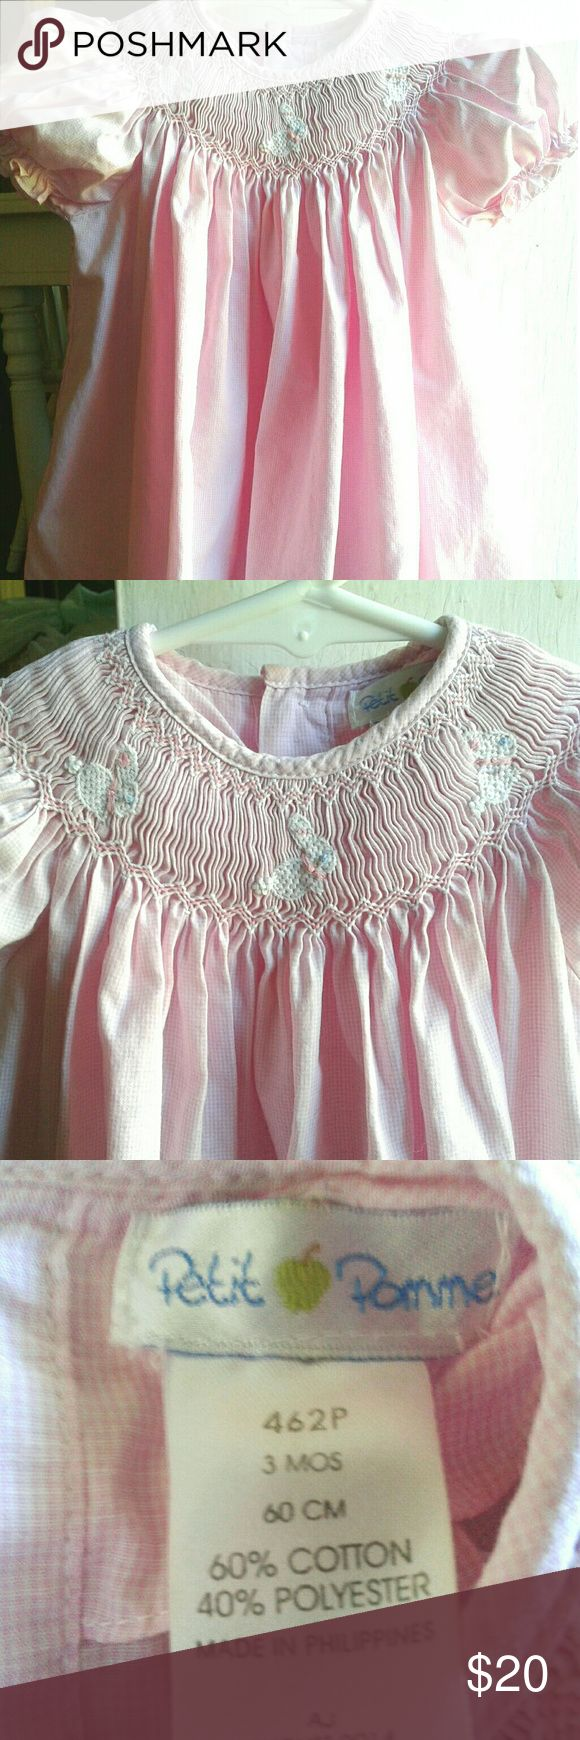 PETIT POMME Smocked Easter Dress Sz 3 Months GORGEOUS EASTER THEME DRESS, EMBROIDERED BUNNIES ON THE SMOCKING G. MI T CONDITION Petit Pomme Dresses